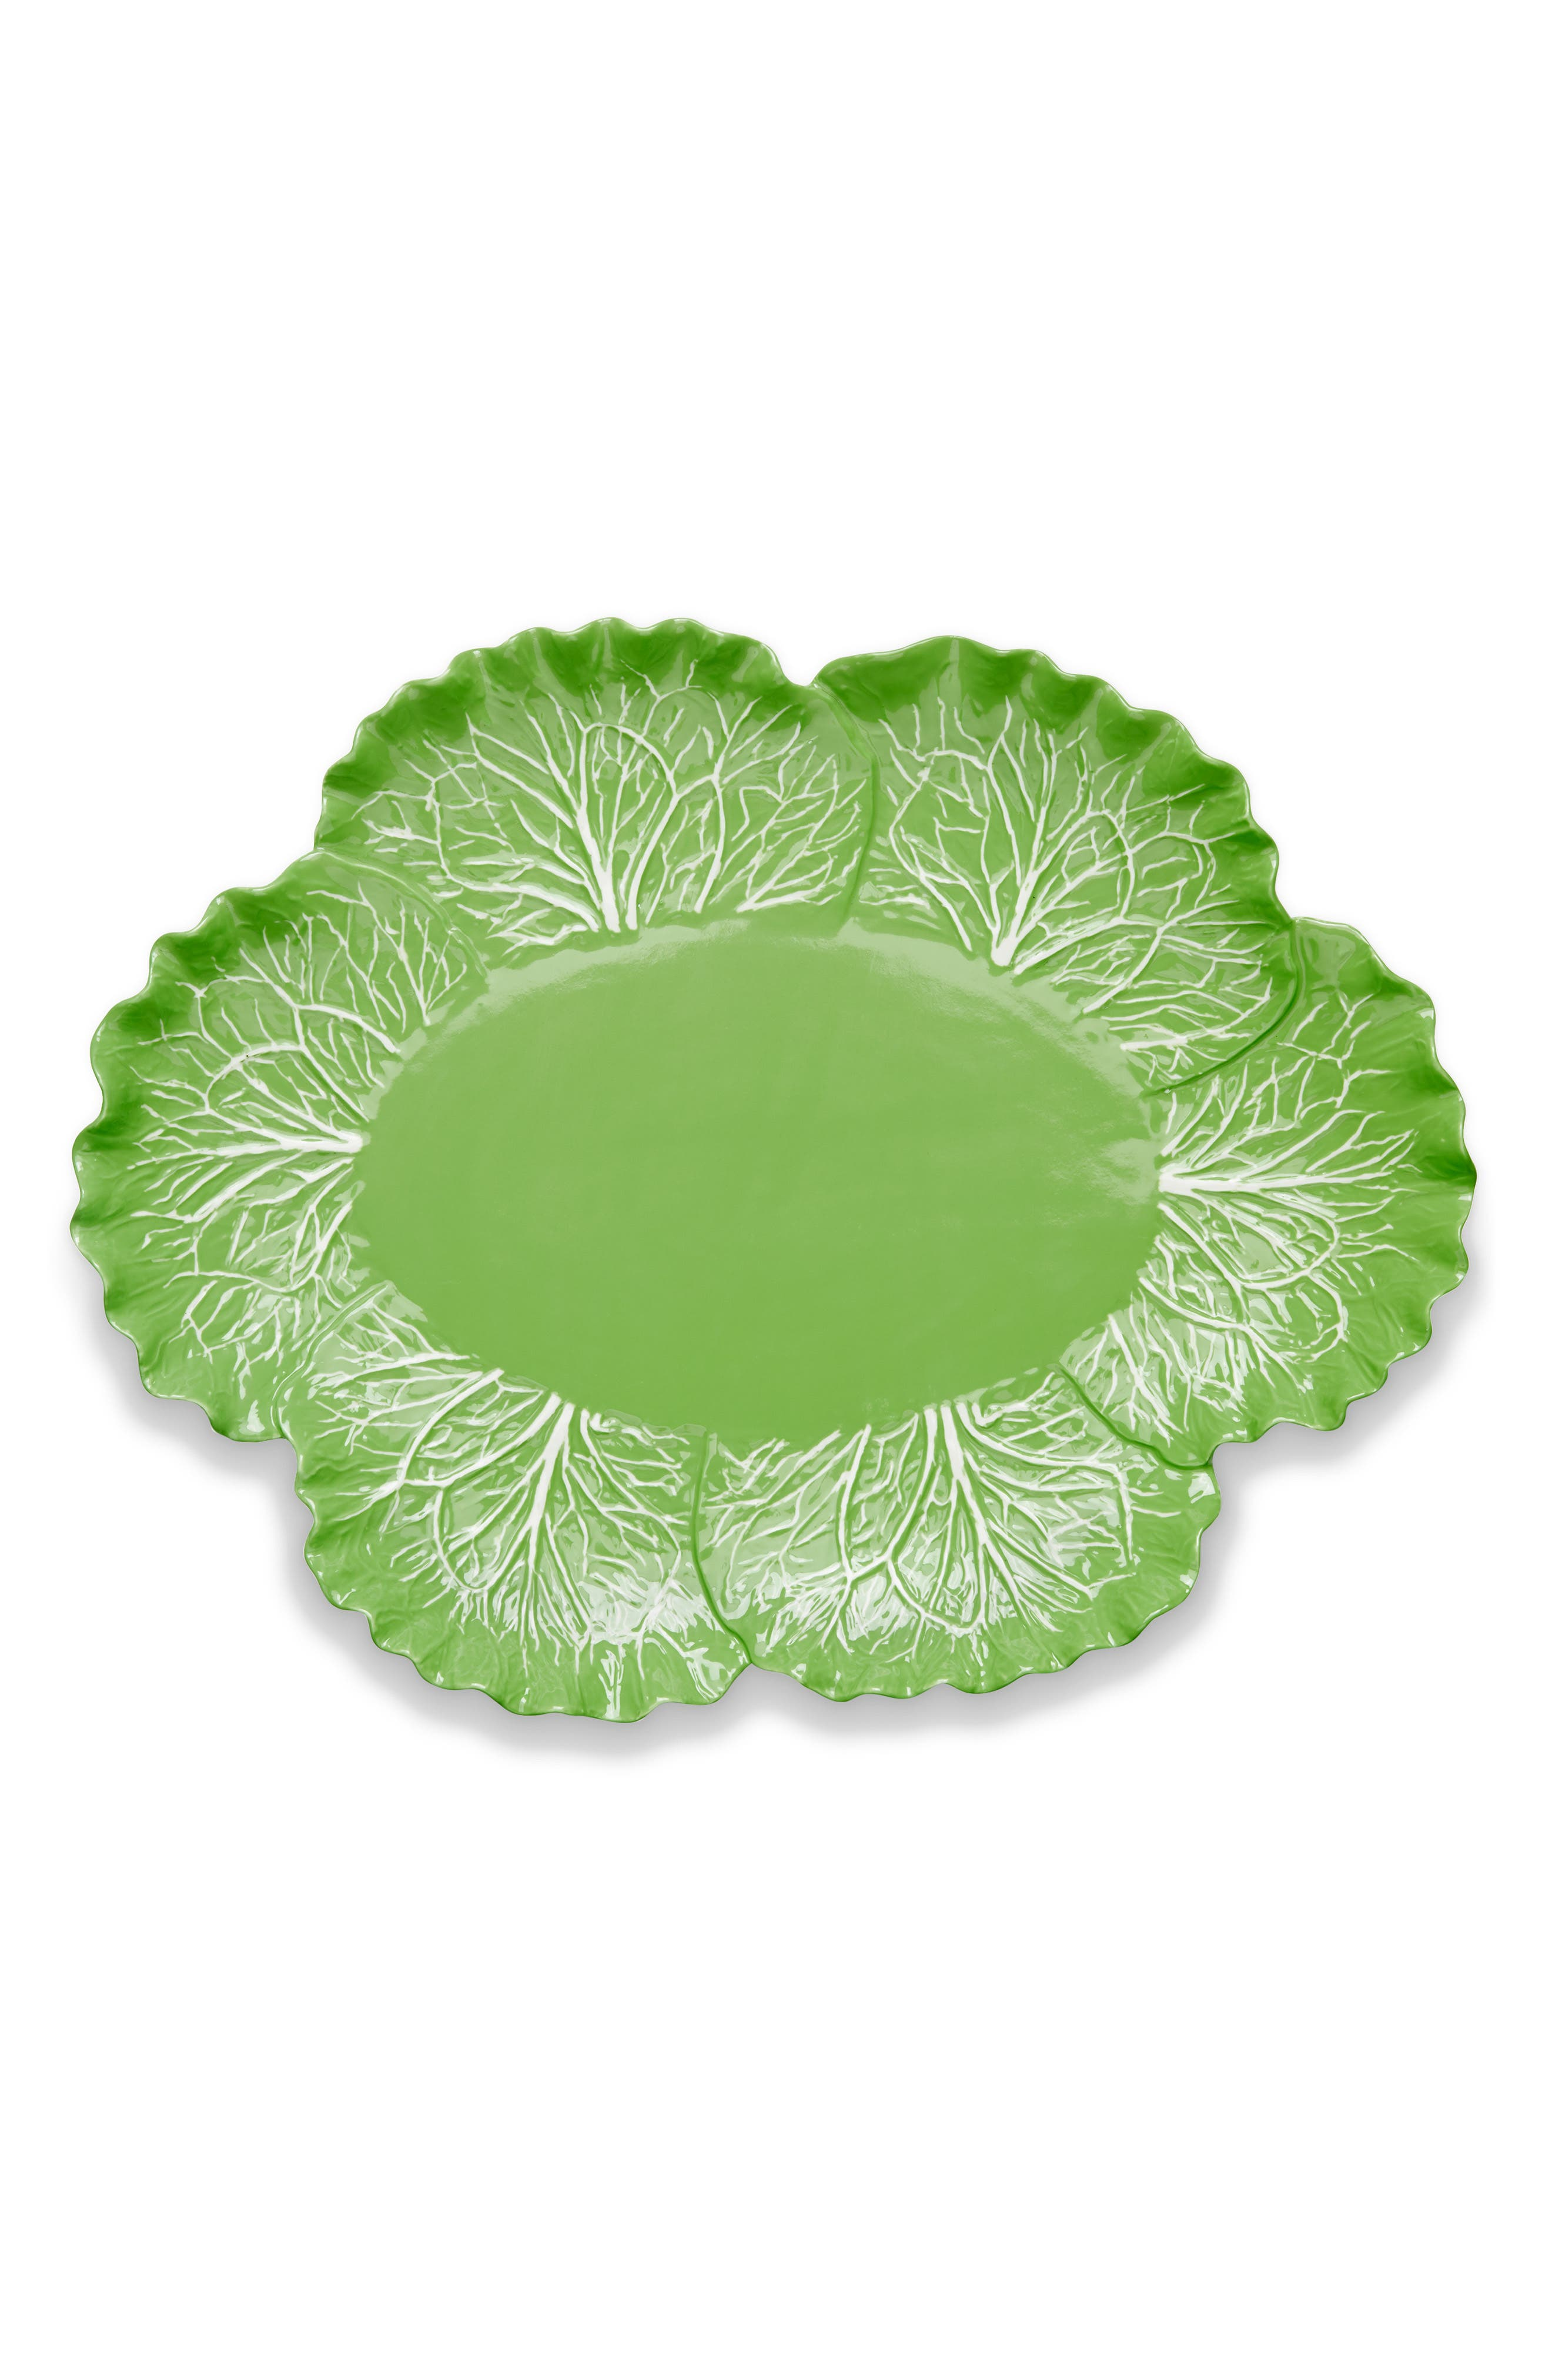 TORY BURCH Lettuce Ware Oval Serving Platter, Main, color, 307